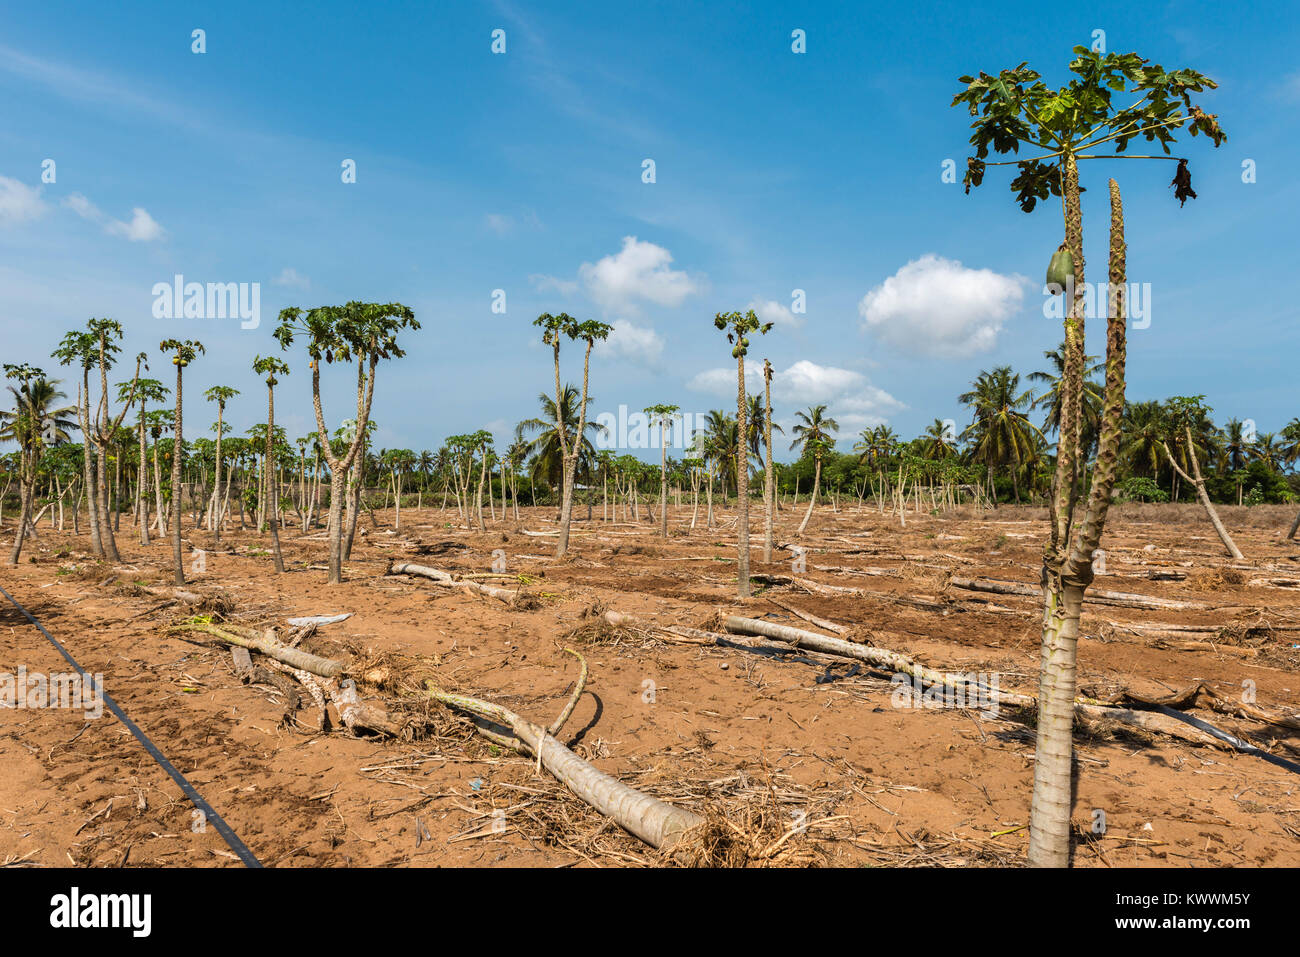 Papaya trees and fruits, farming in Anloga, Volta Region, Ghana, Africa - Stock Image